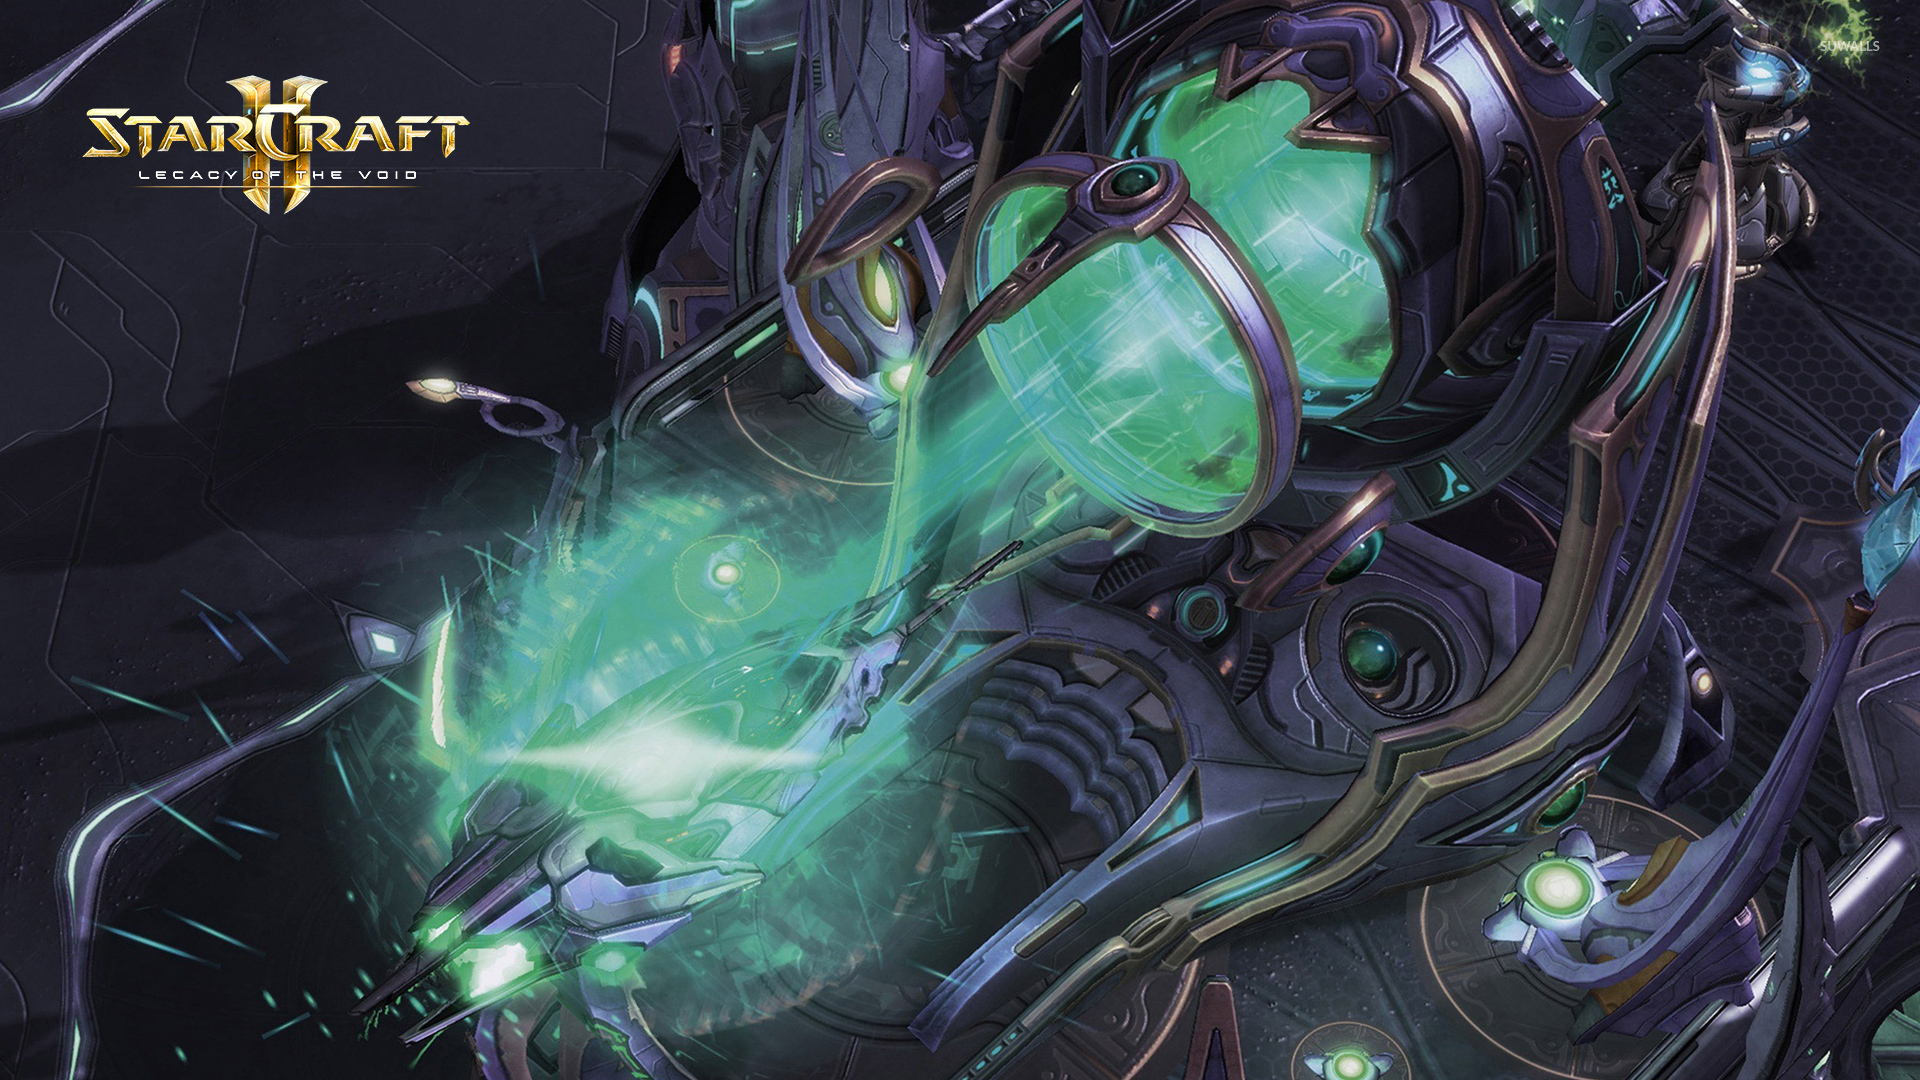 Spaceship Launch In Starcraft Ii Legacy Of The Void Wallpaper